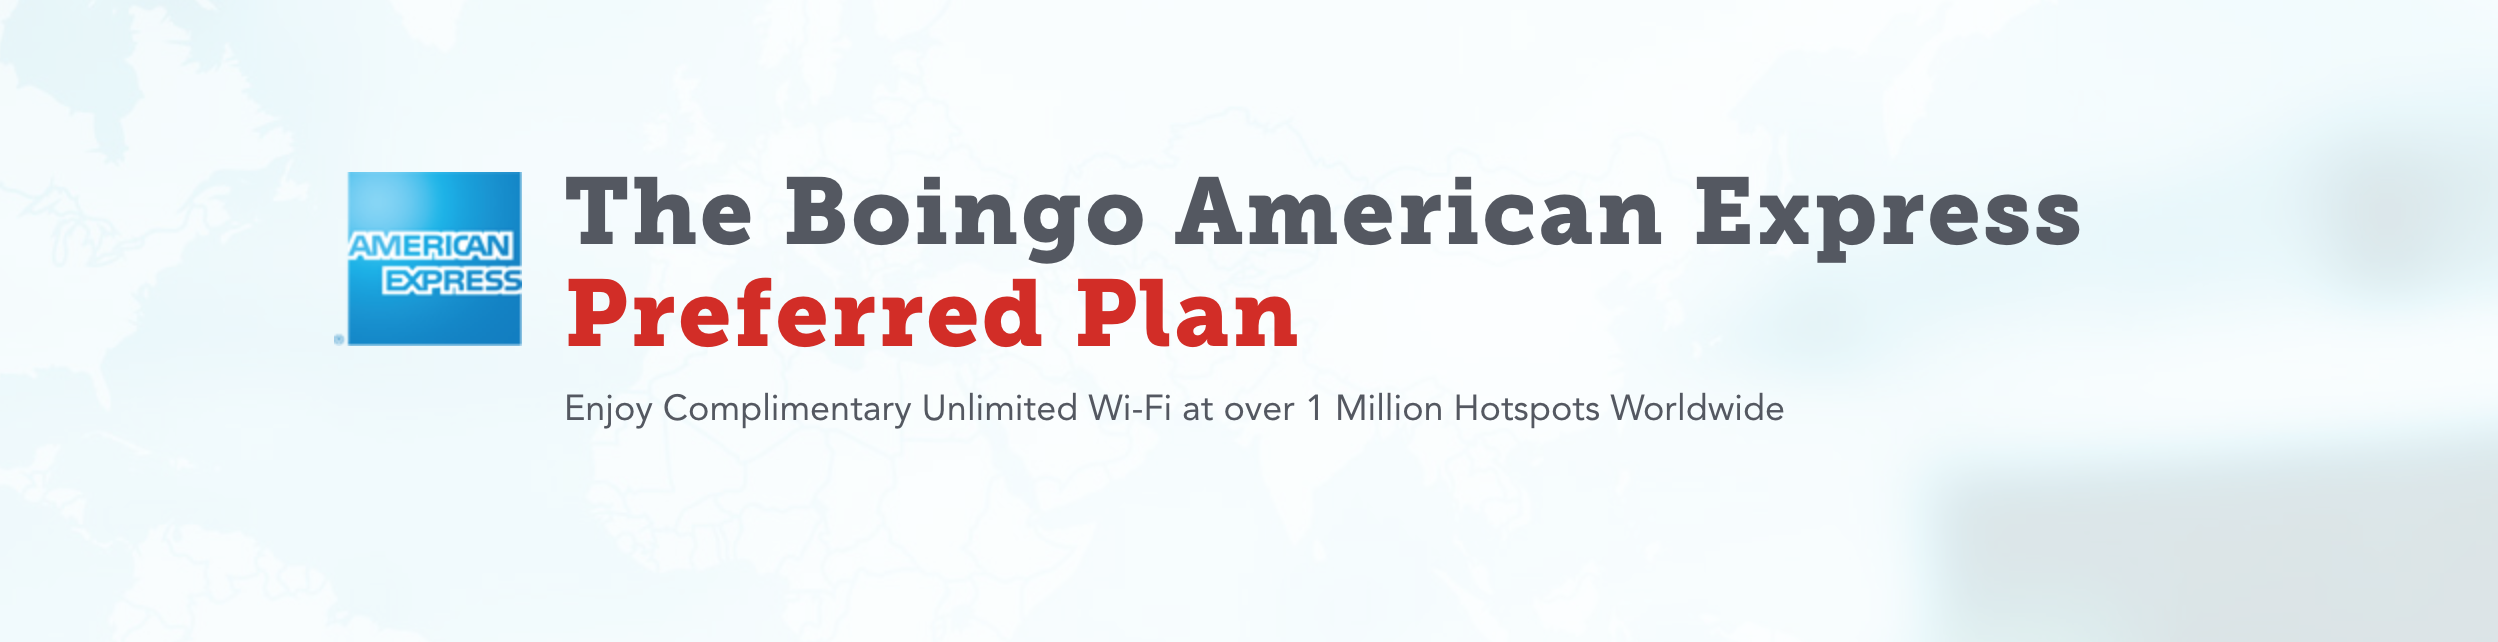 Amex Boingo Preferred Plan